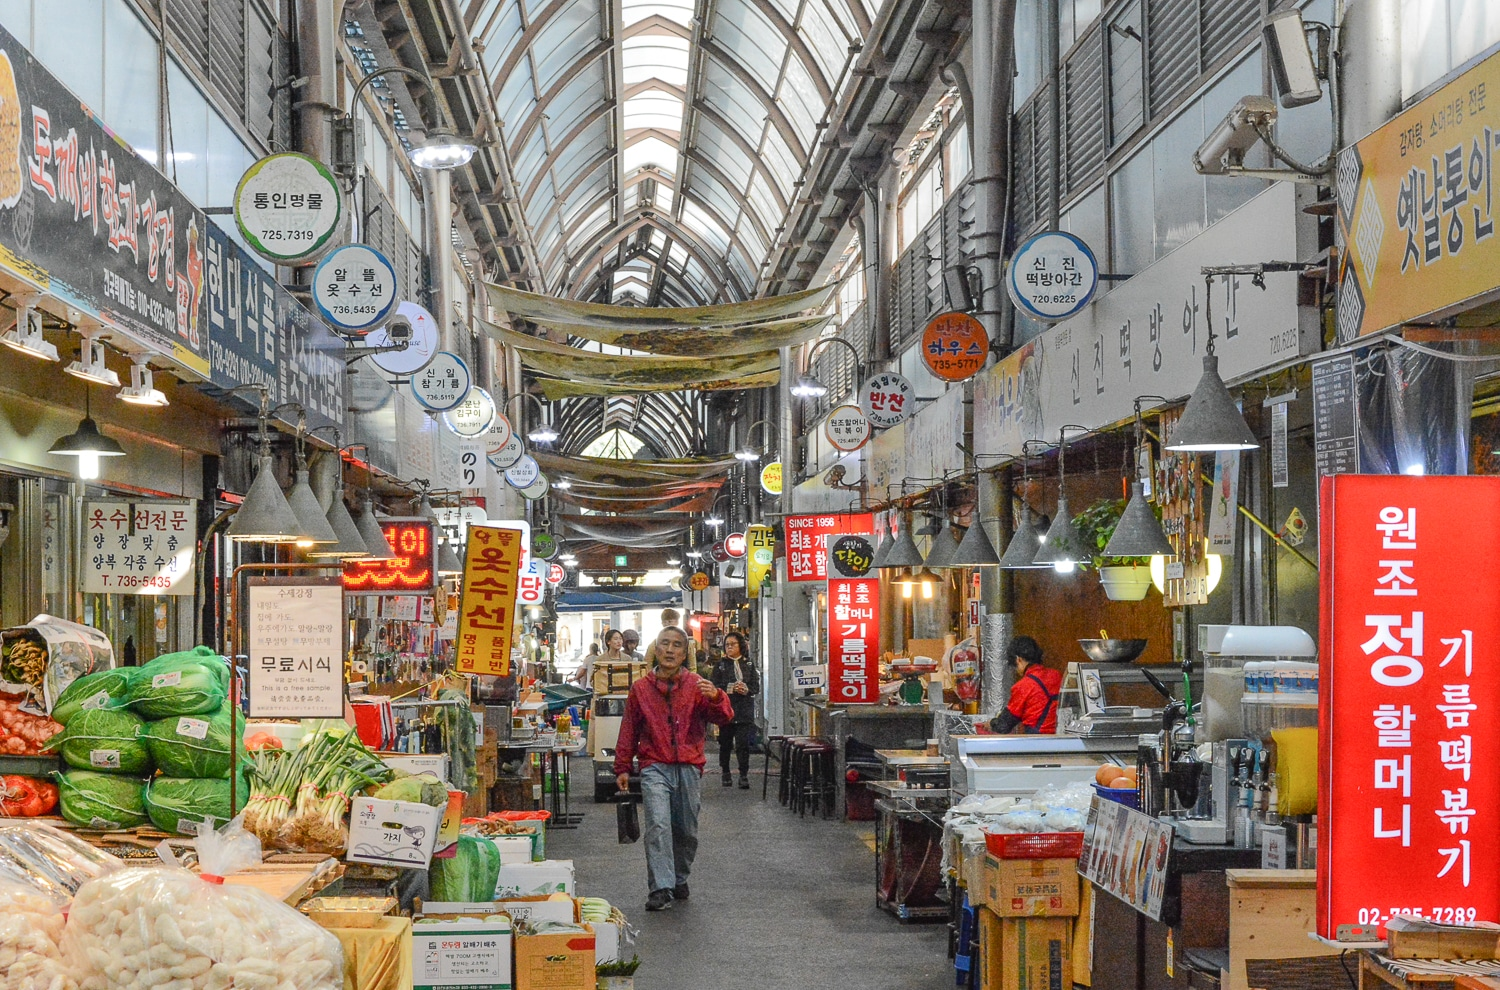 Seoul Tipps und Sightseeing in Seoul: 12 Highlights in Koreas Hauptstadt - Tongin Market